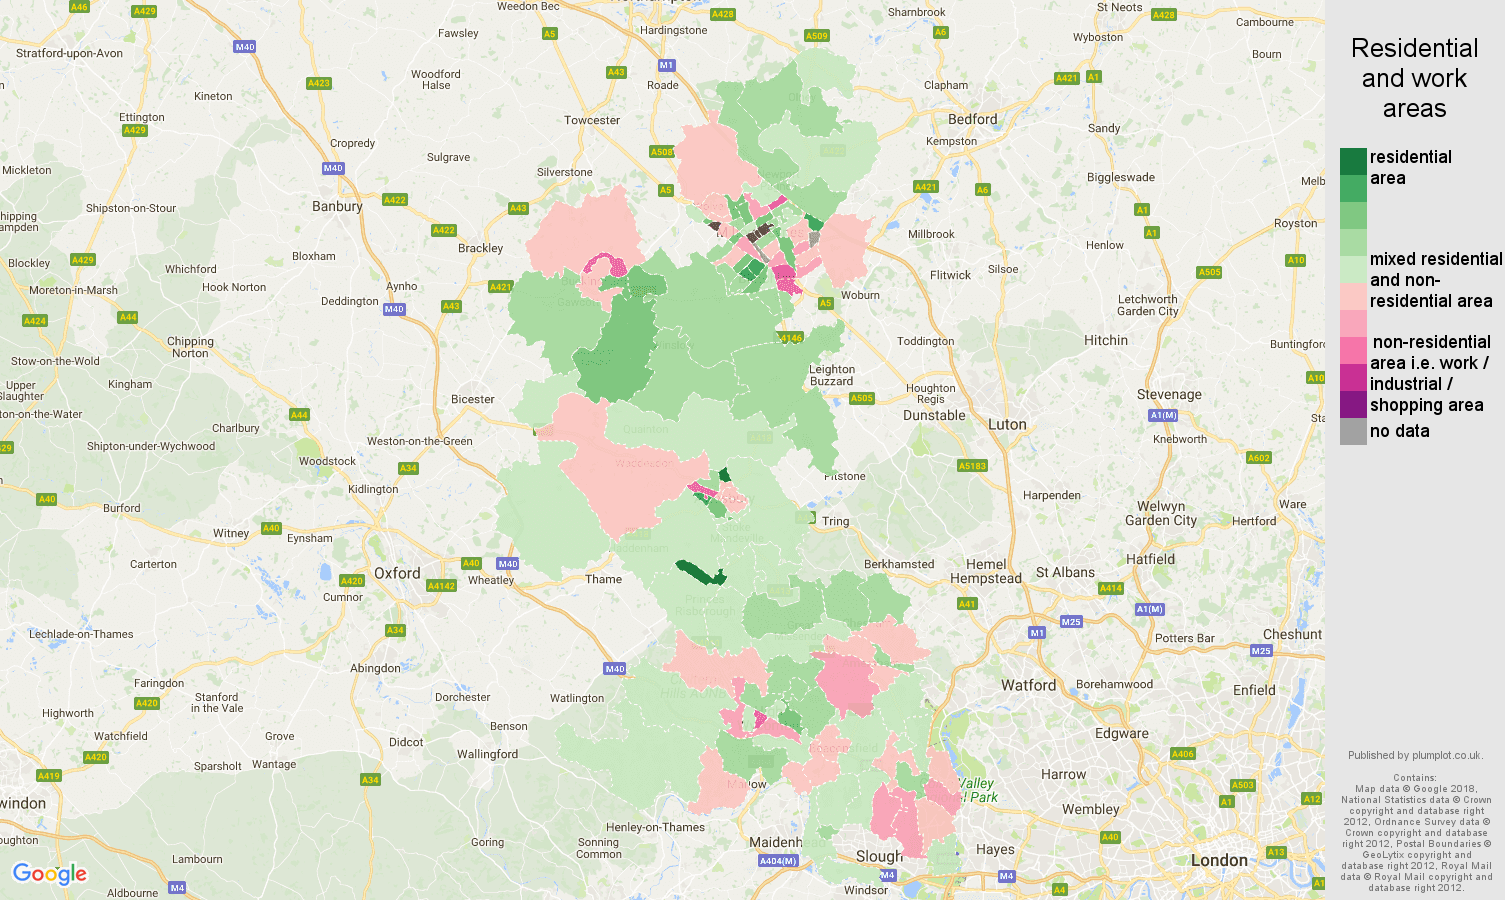 Buckinghamshire residential areas map